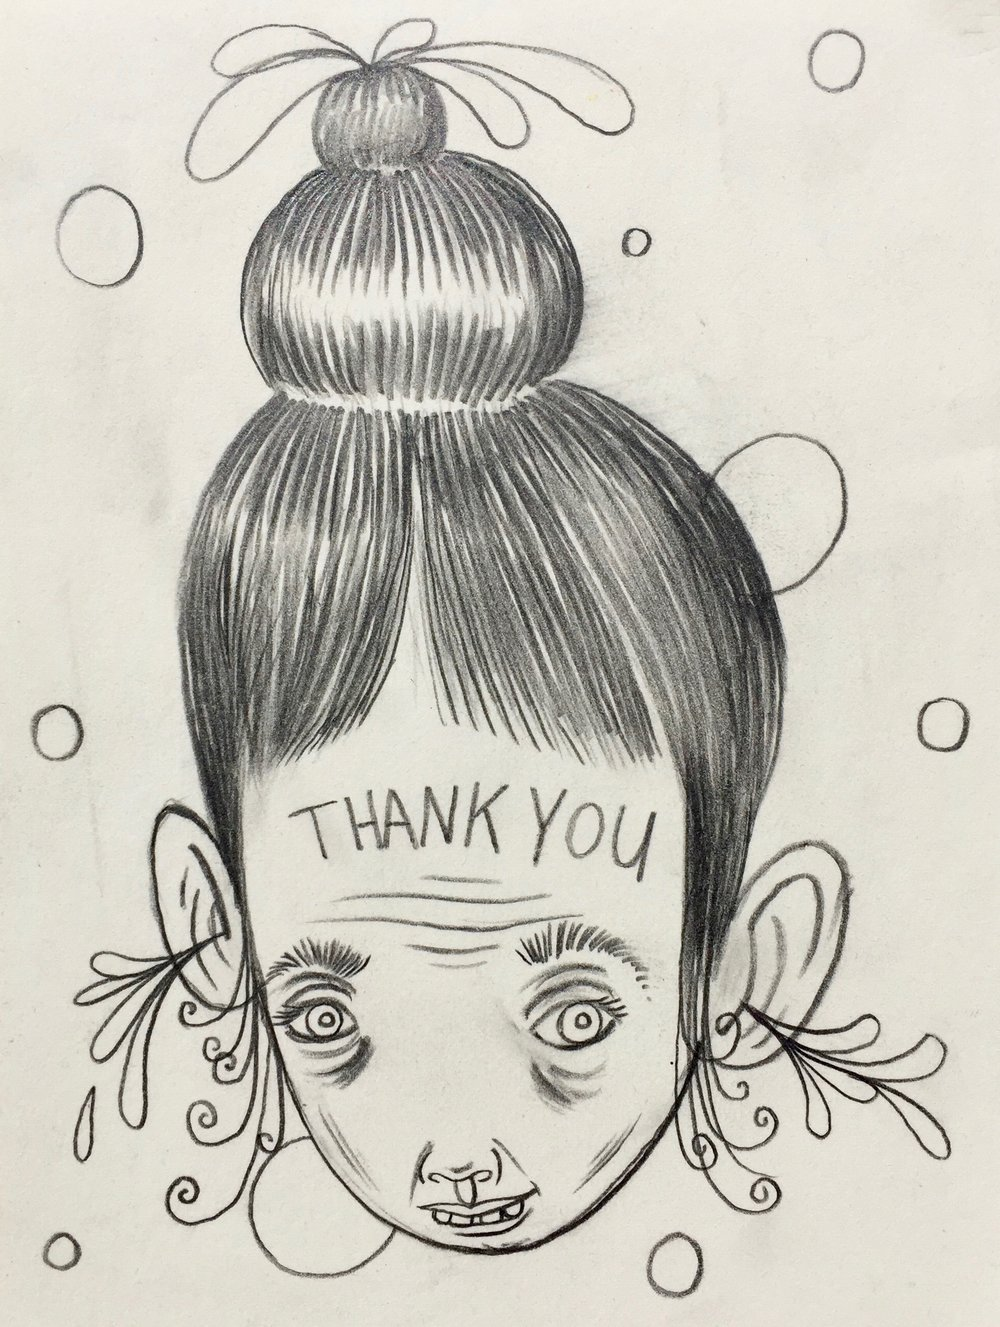 Thank You    Graphite on paper  2005  4.5 x 6 In  $500.00